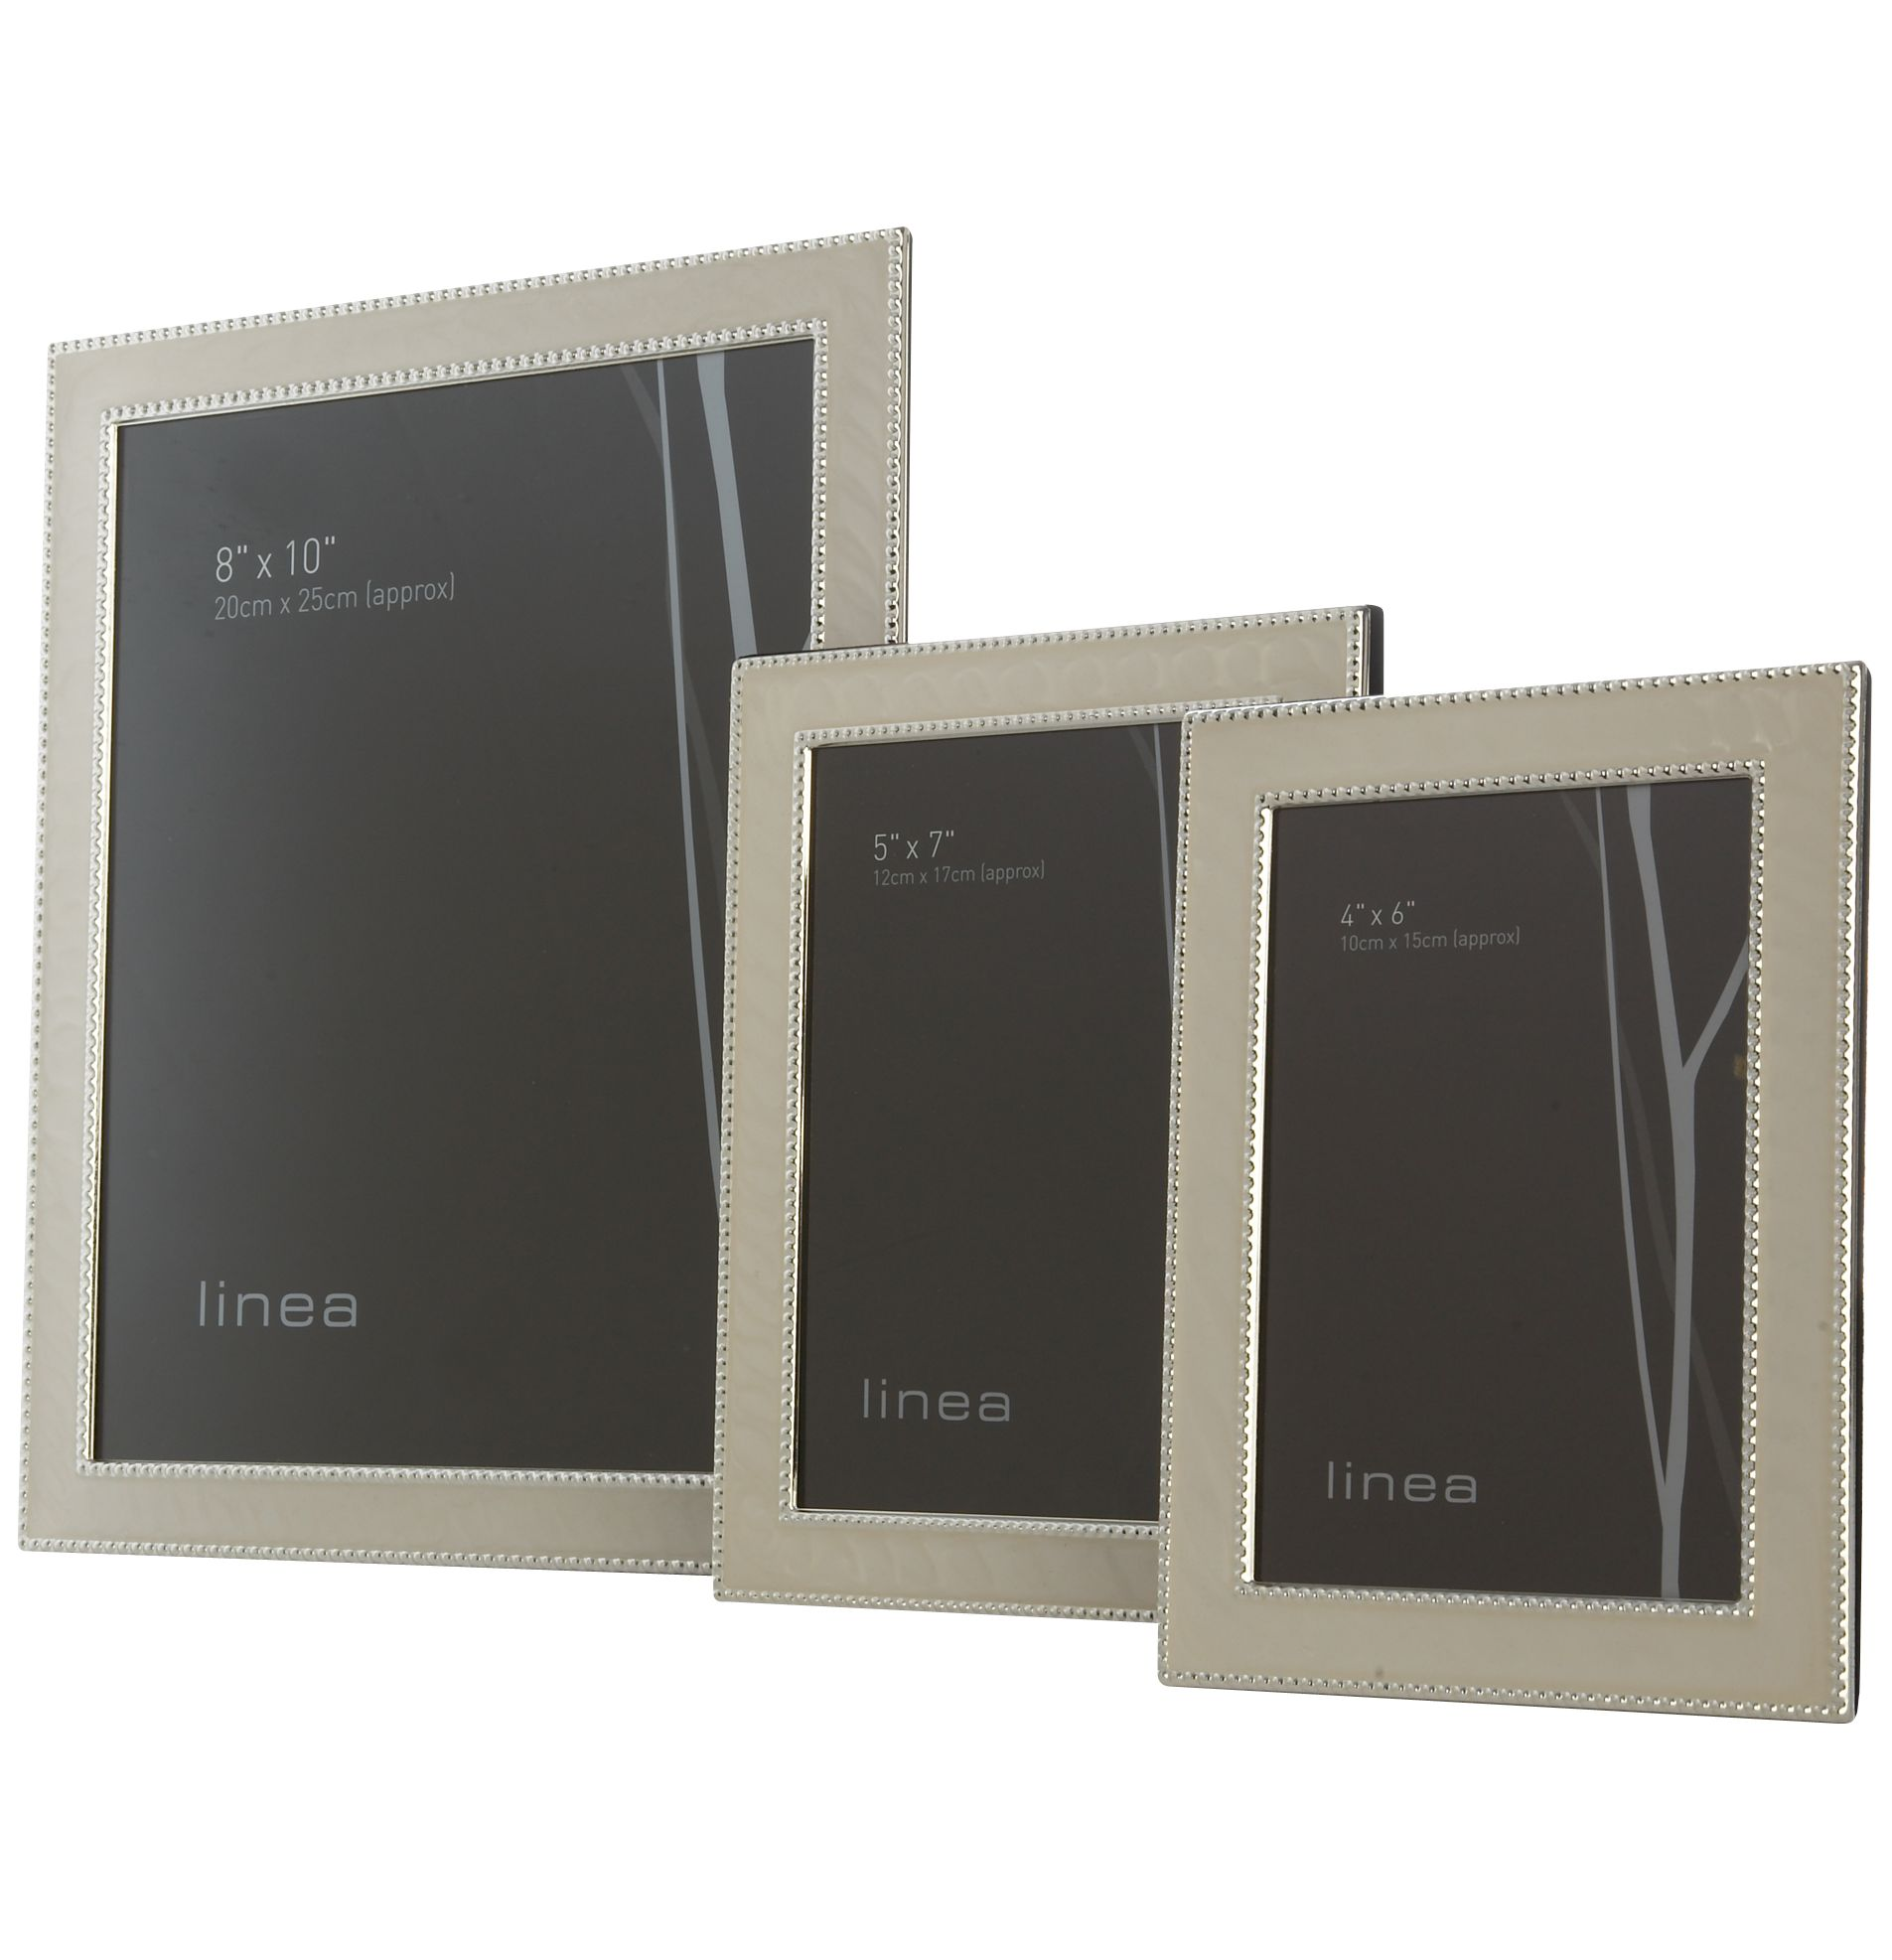 Image of Linea 4 x 6 beaded enamel photo frame